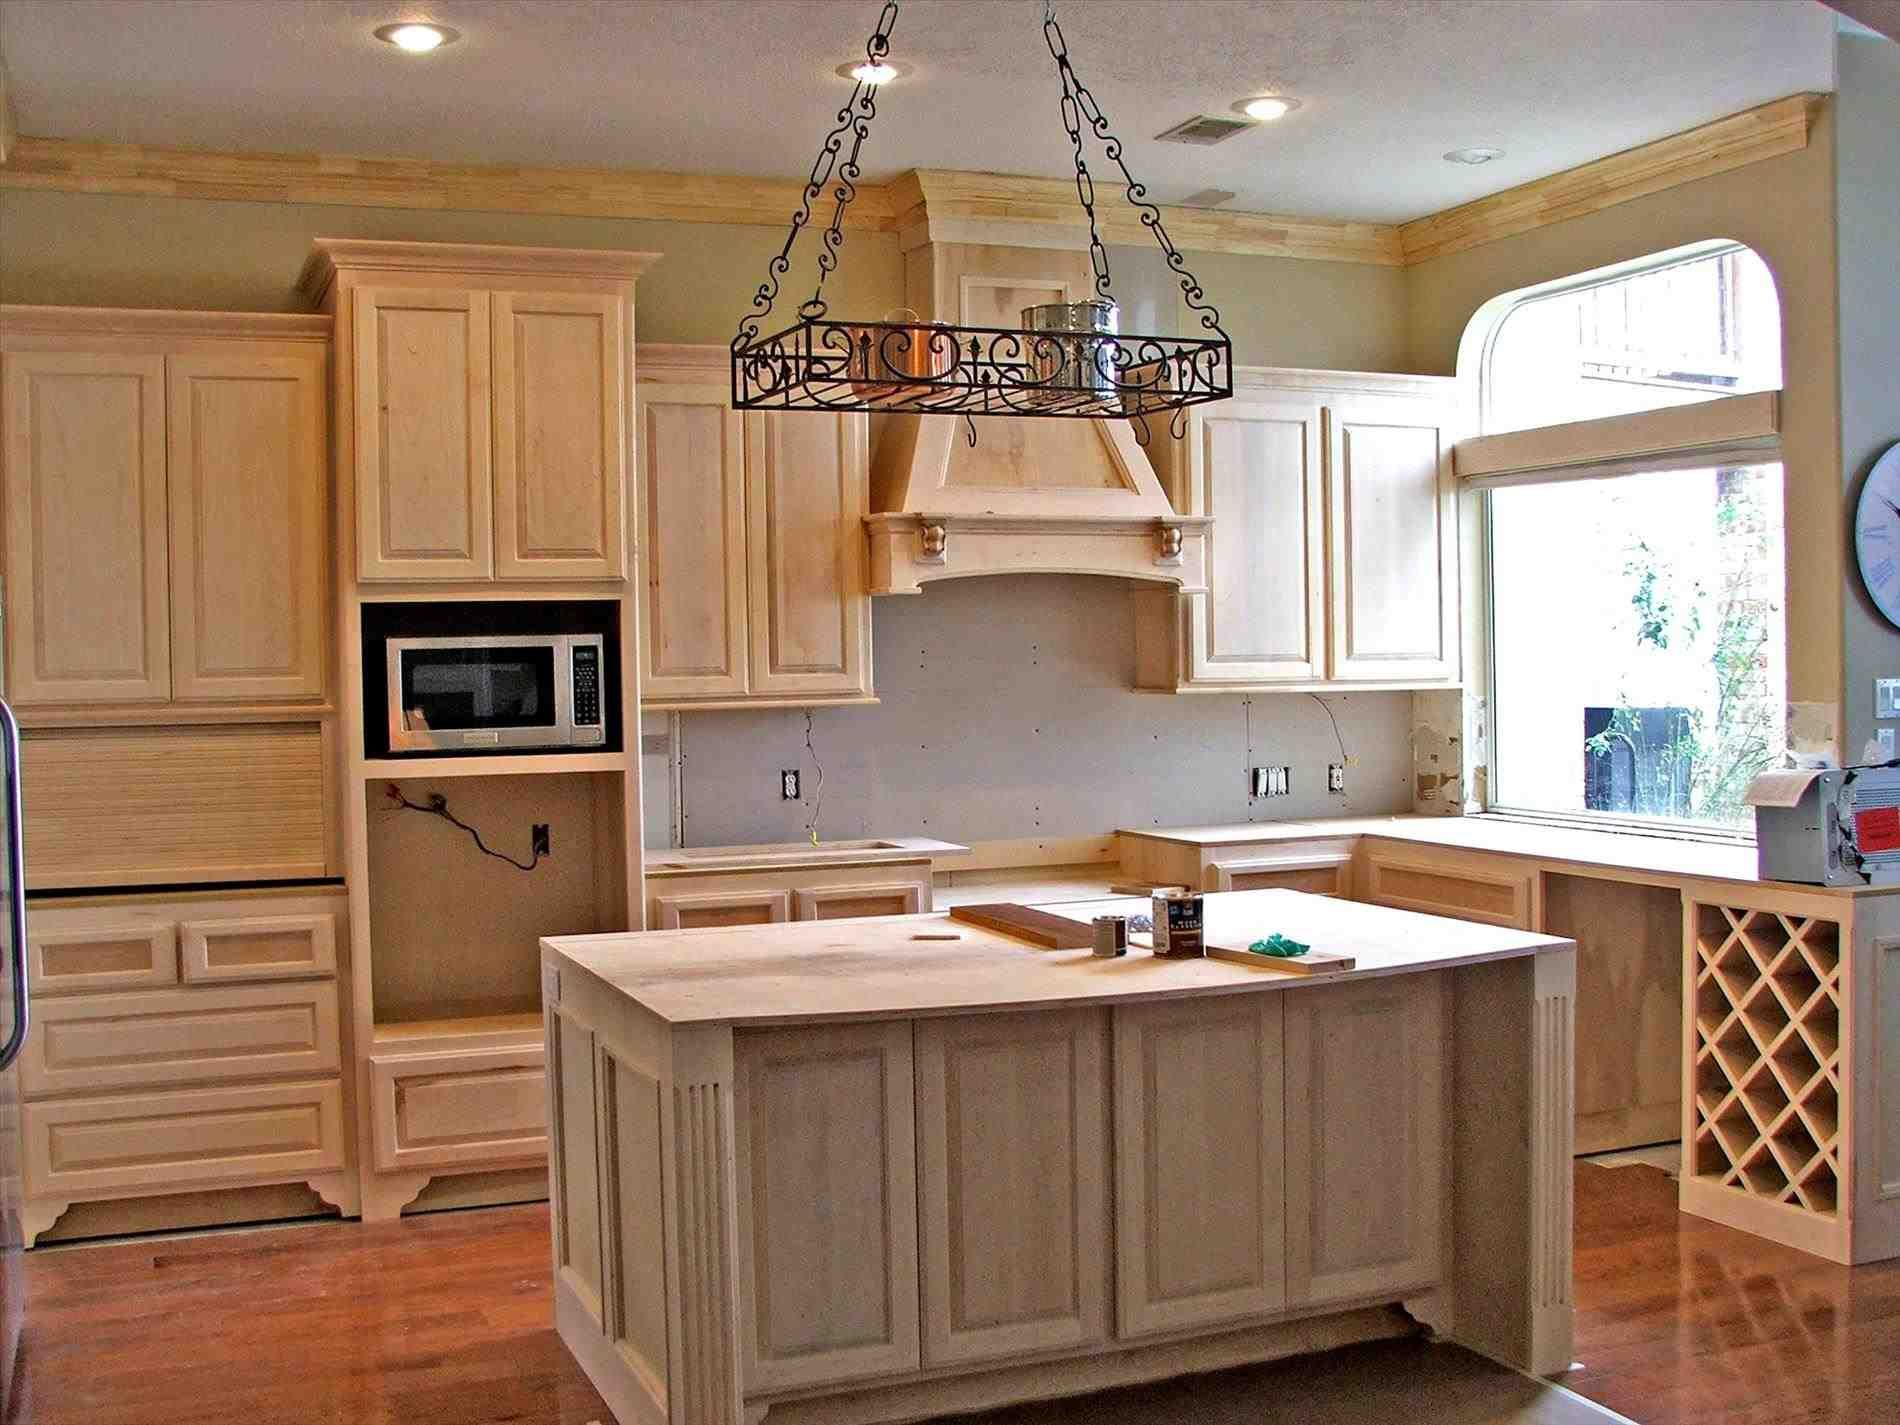 New Post Oak Kitchen Cabinets And Wall Color